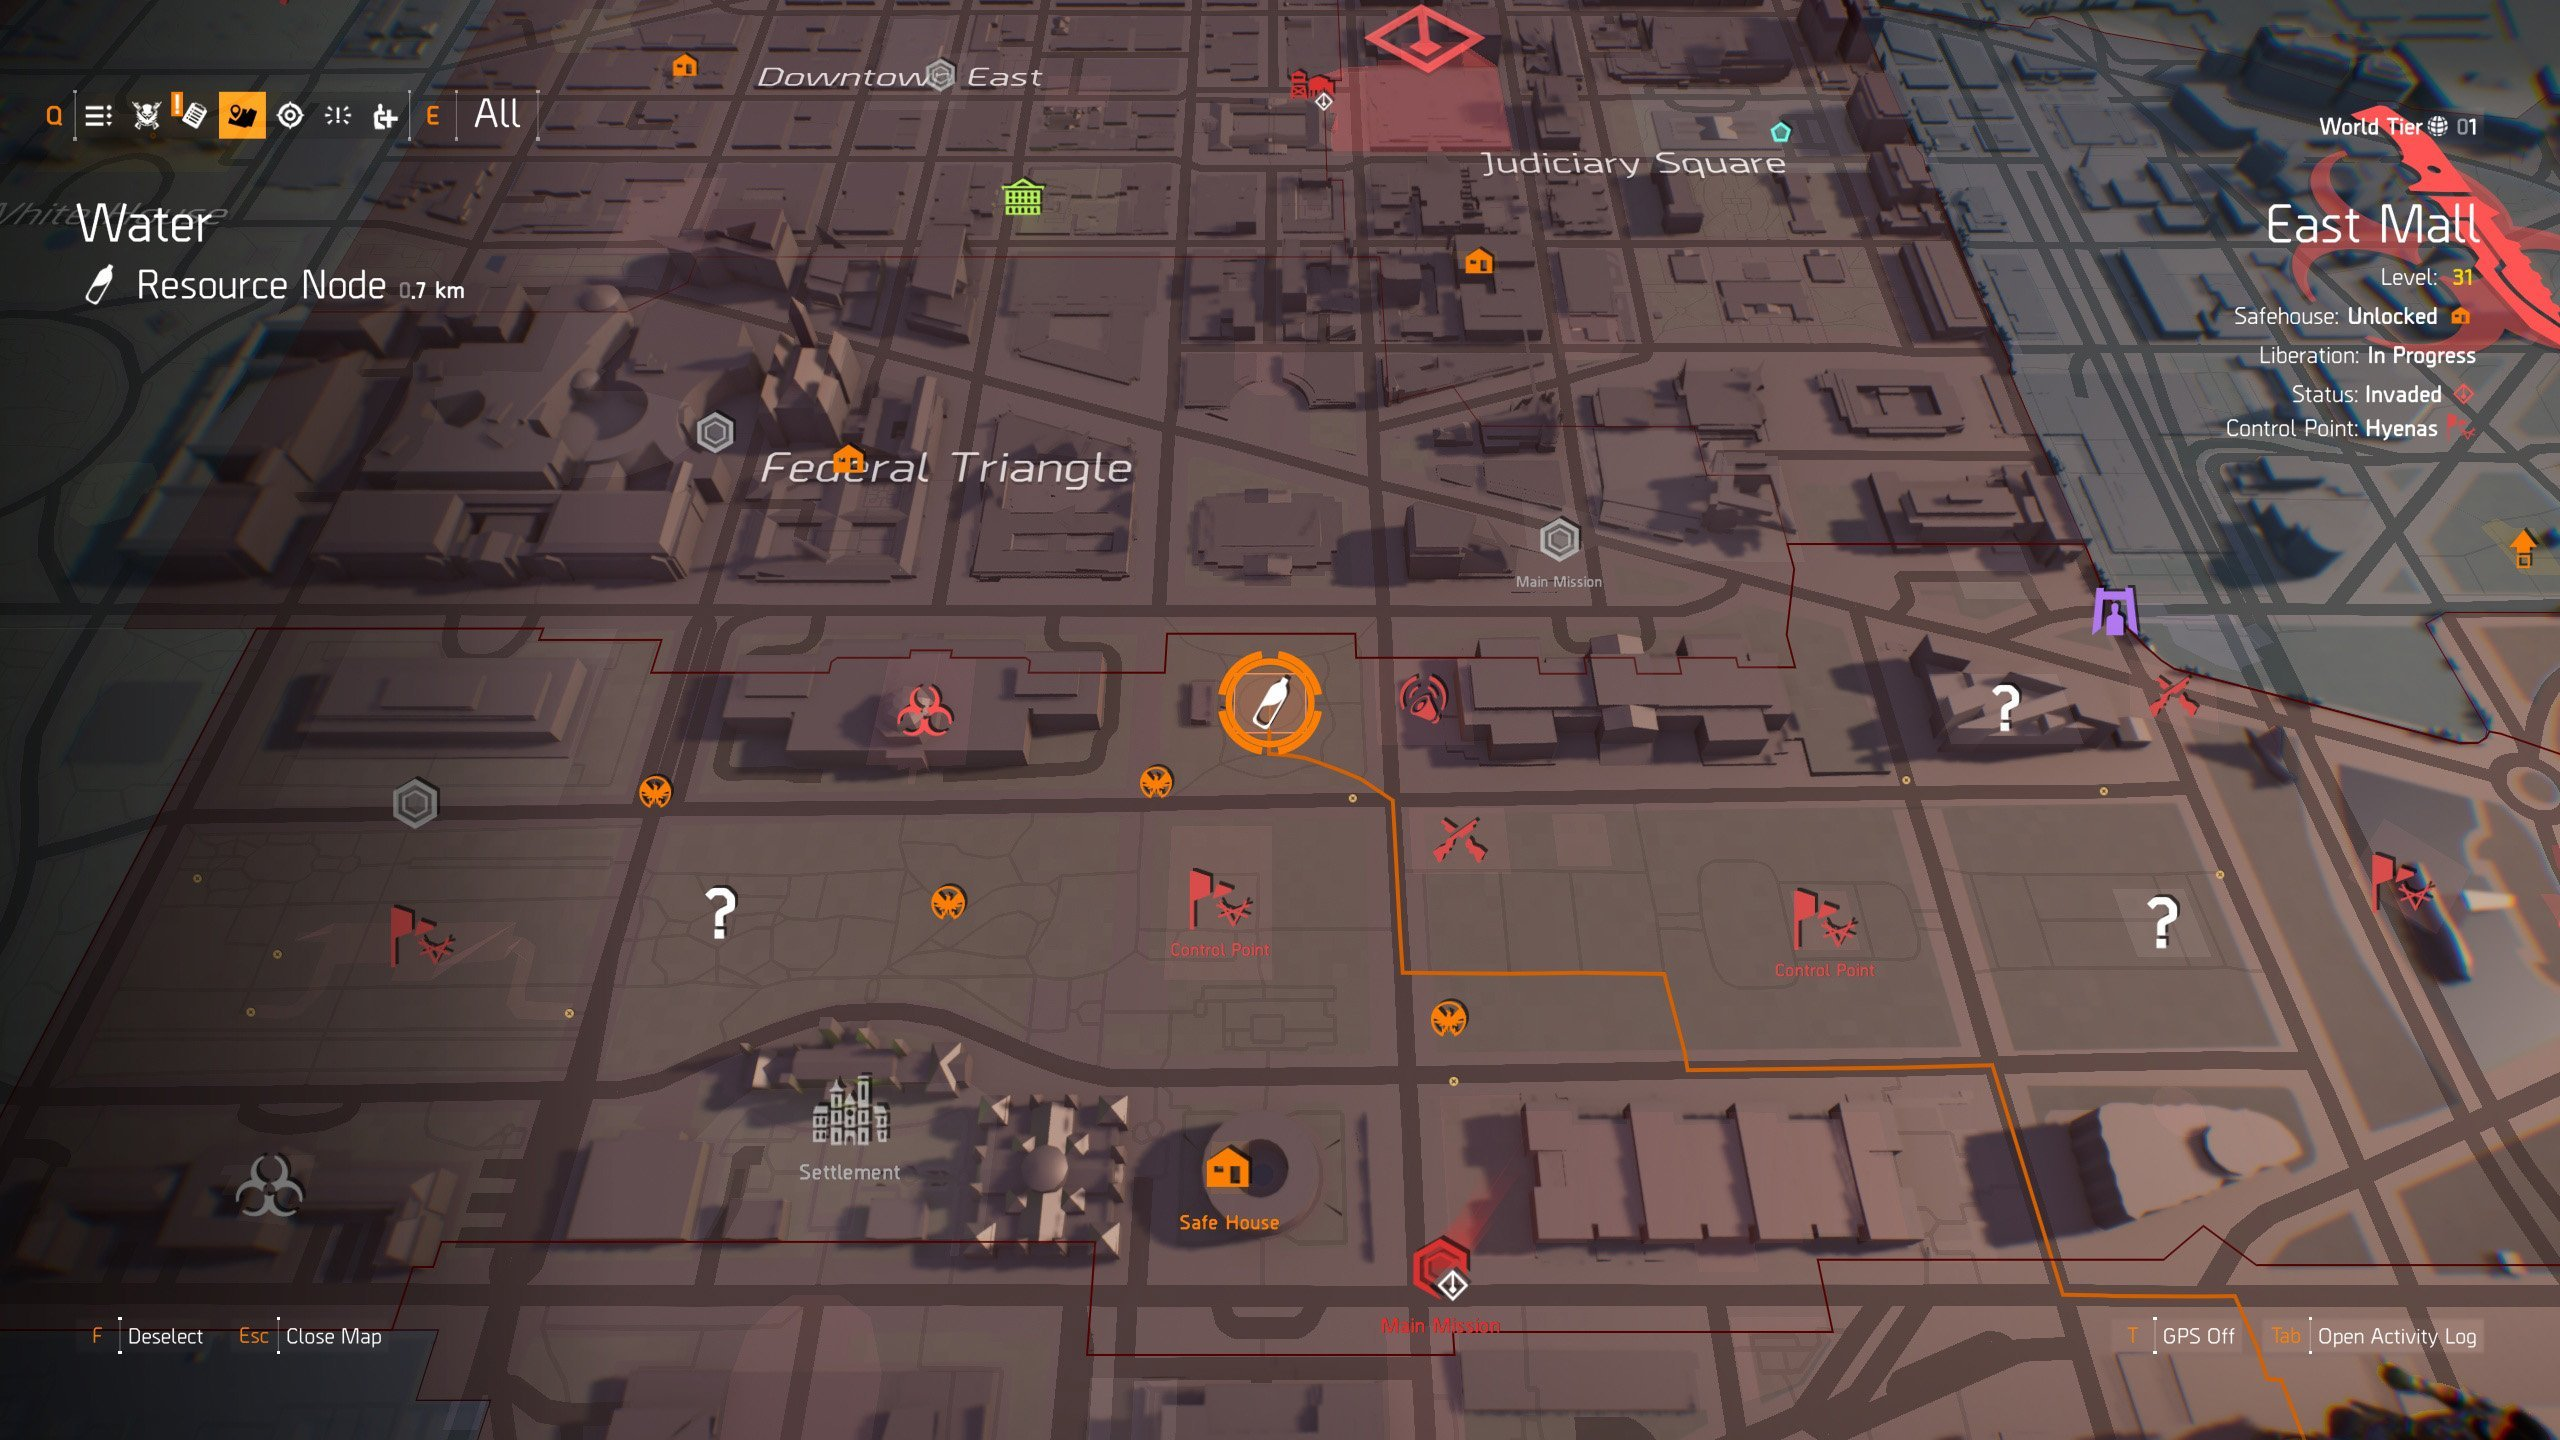 How to get the Cross, Diamond, Death and Phantom Masks - Visit this location in The Division 2